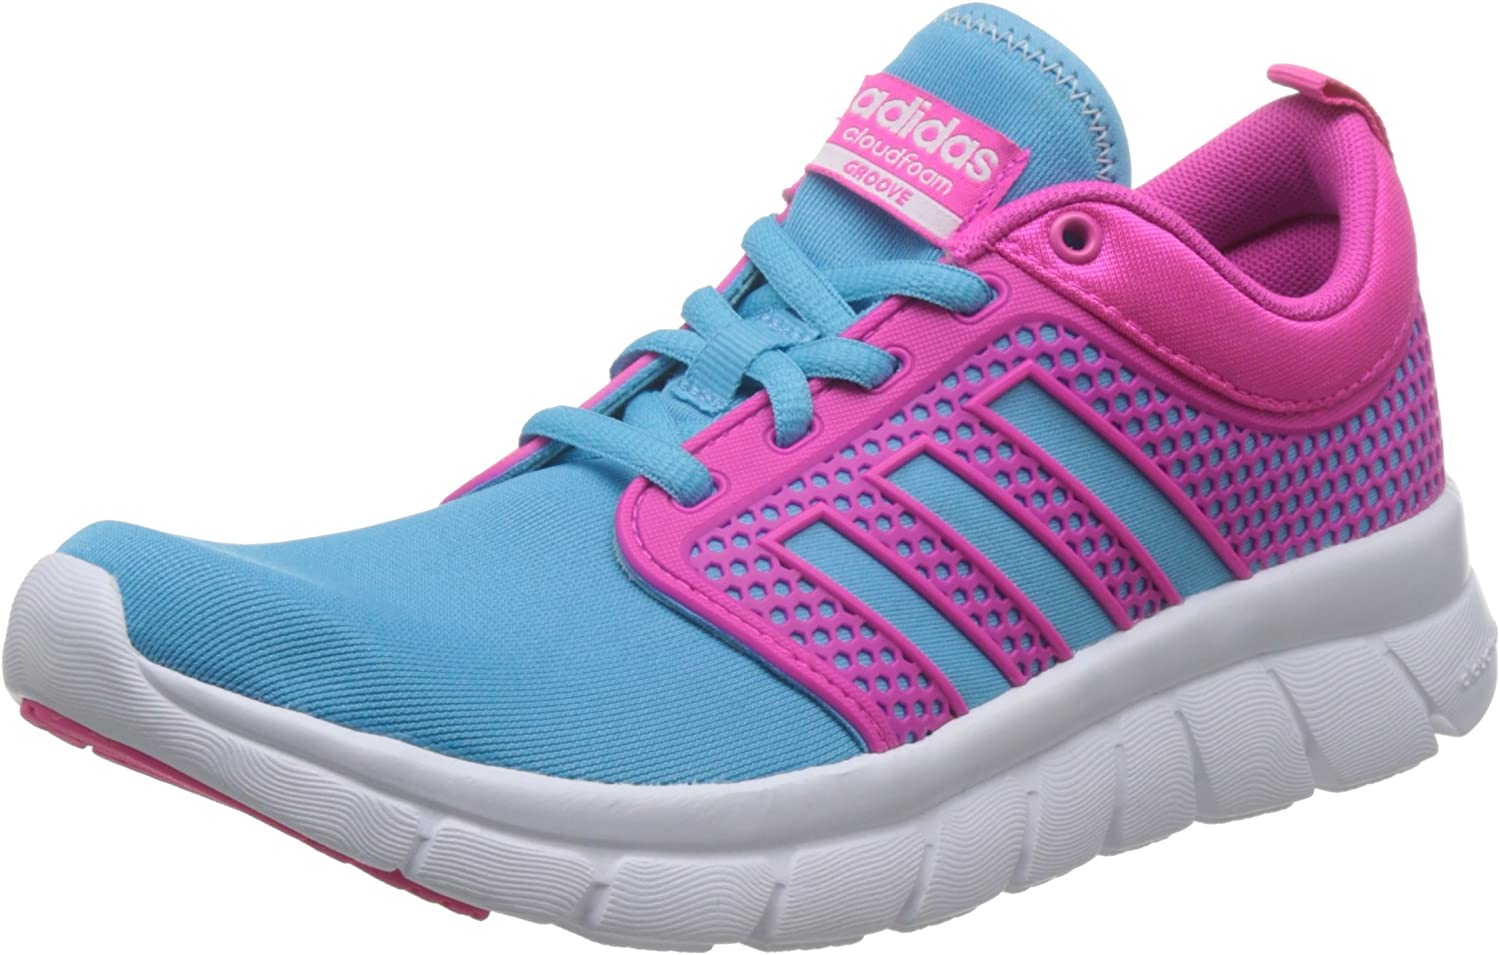 adidas Neo Cloudfoam Groove Womens Running Sneakers/Shoes